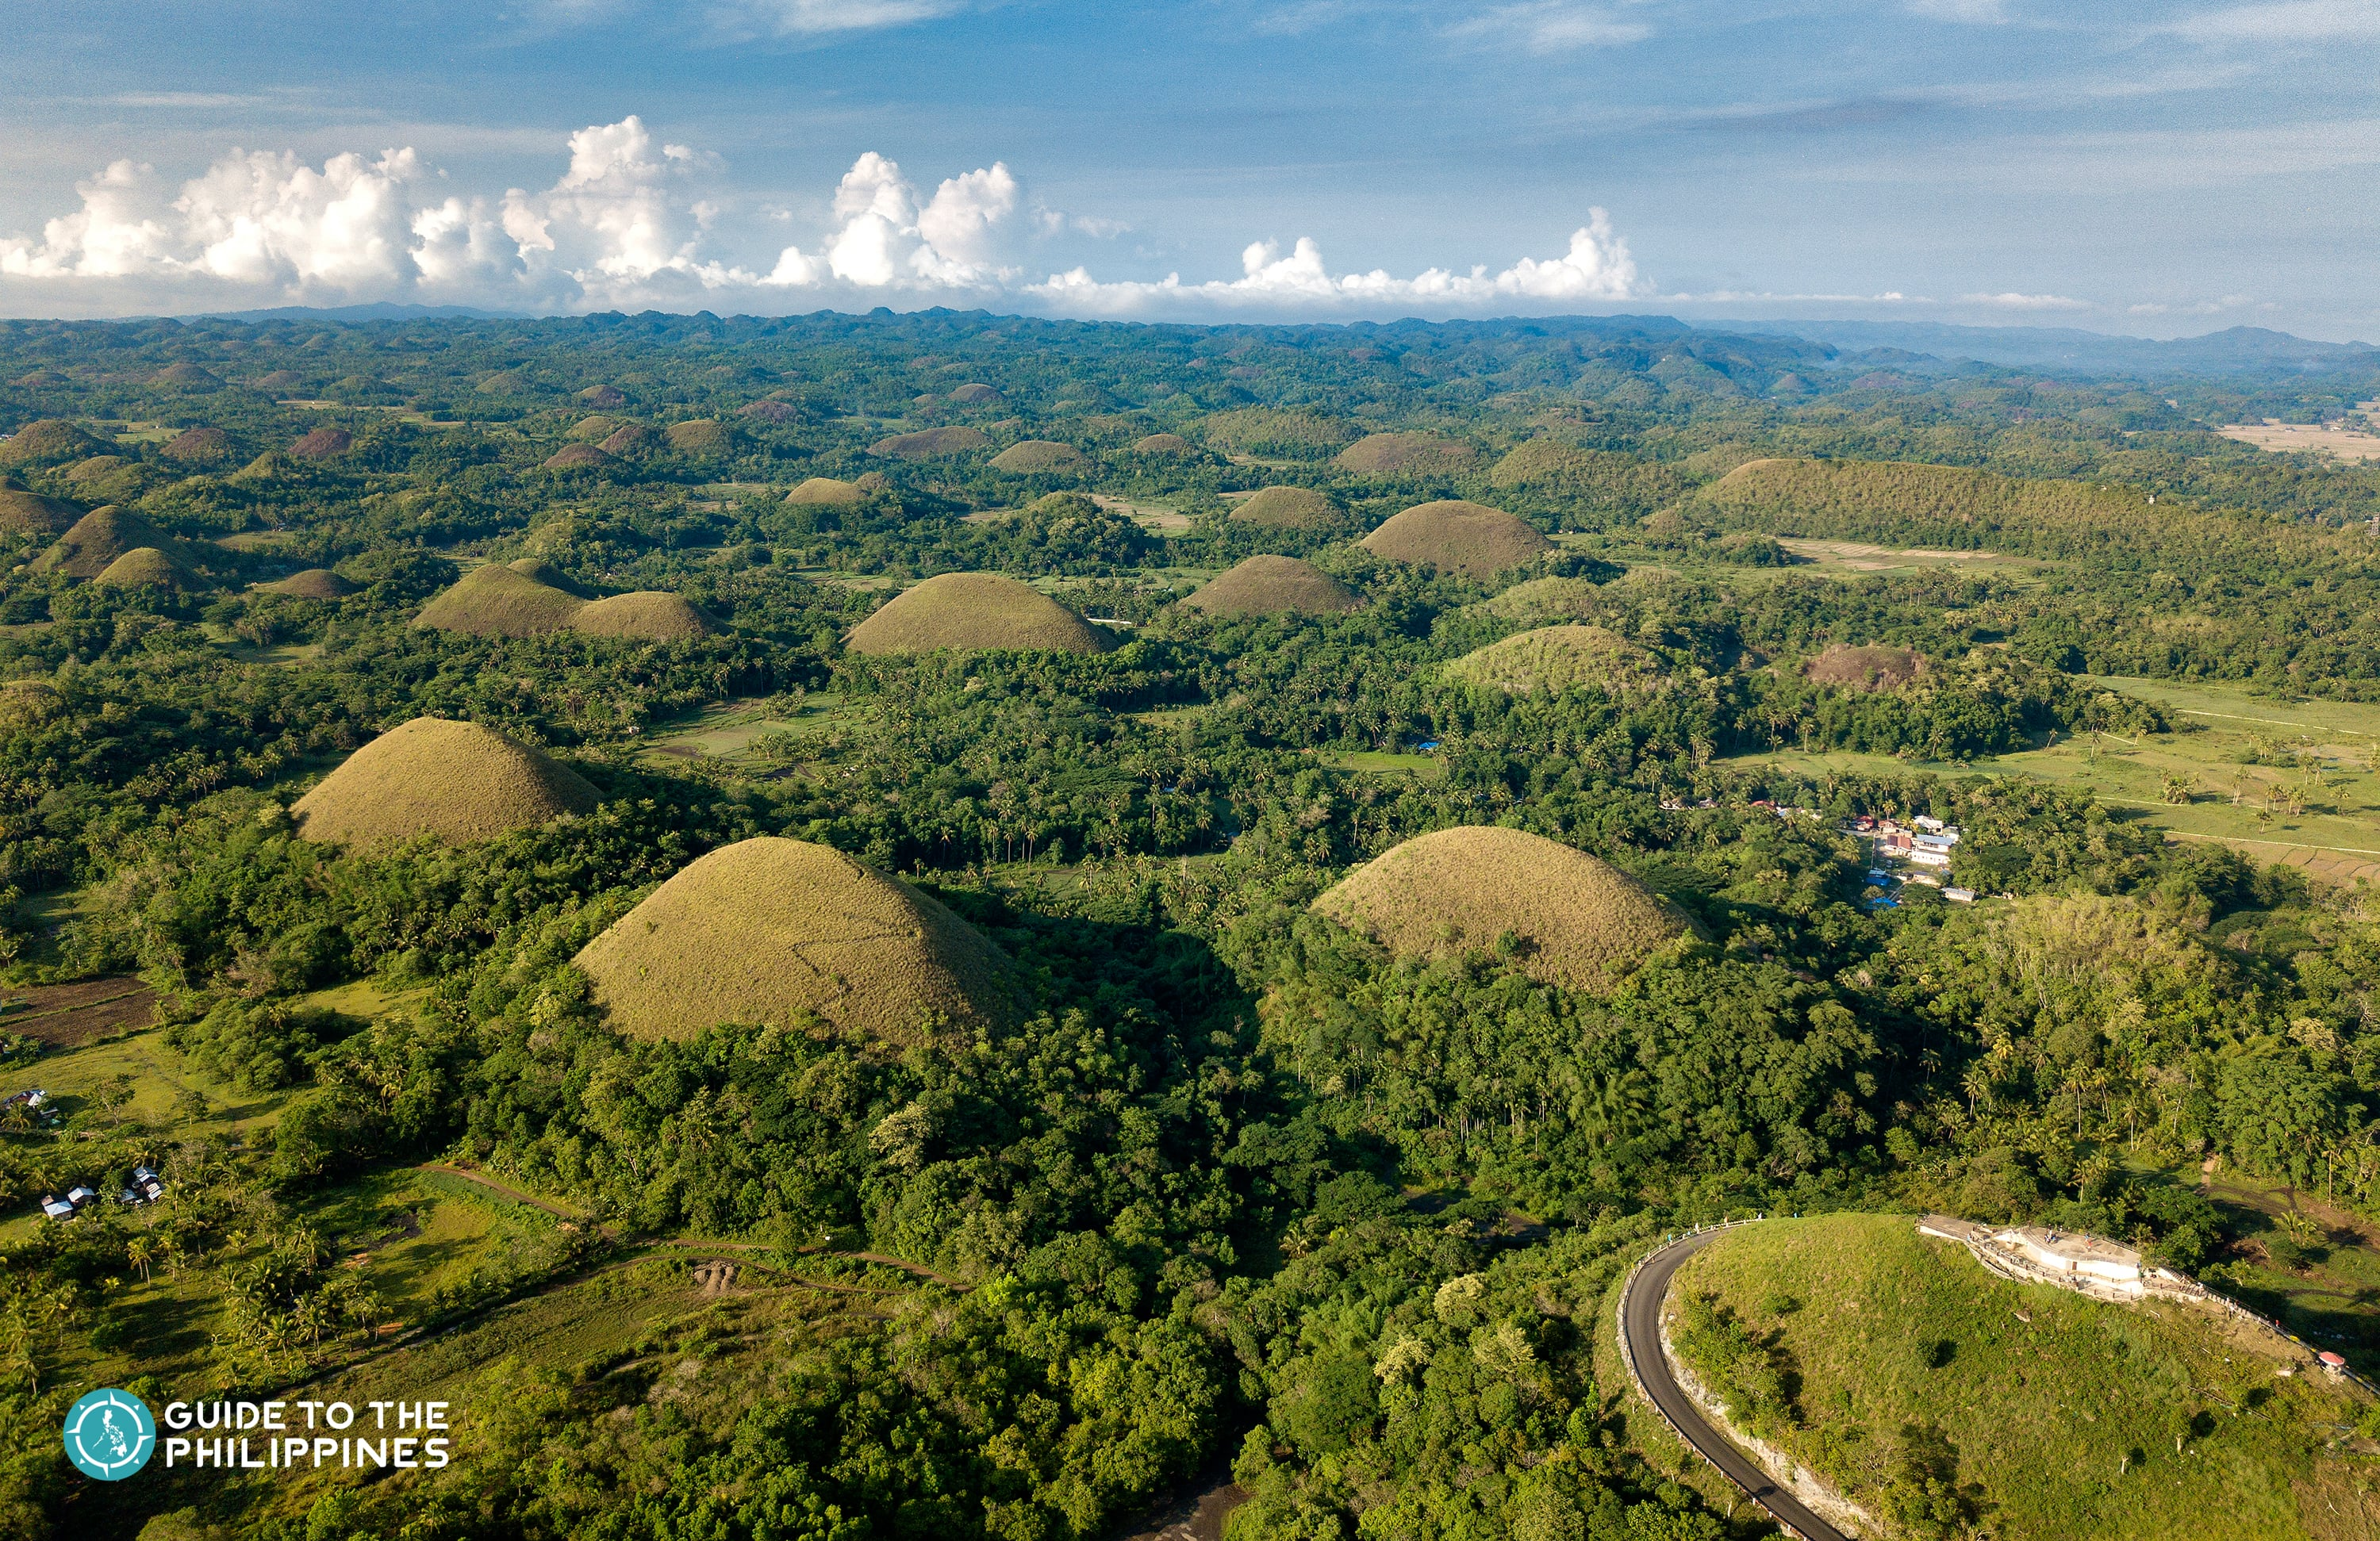 Aerial view of Chocolate Hills in Bohol